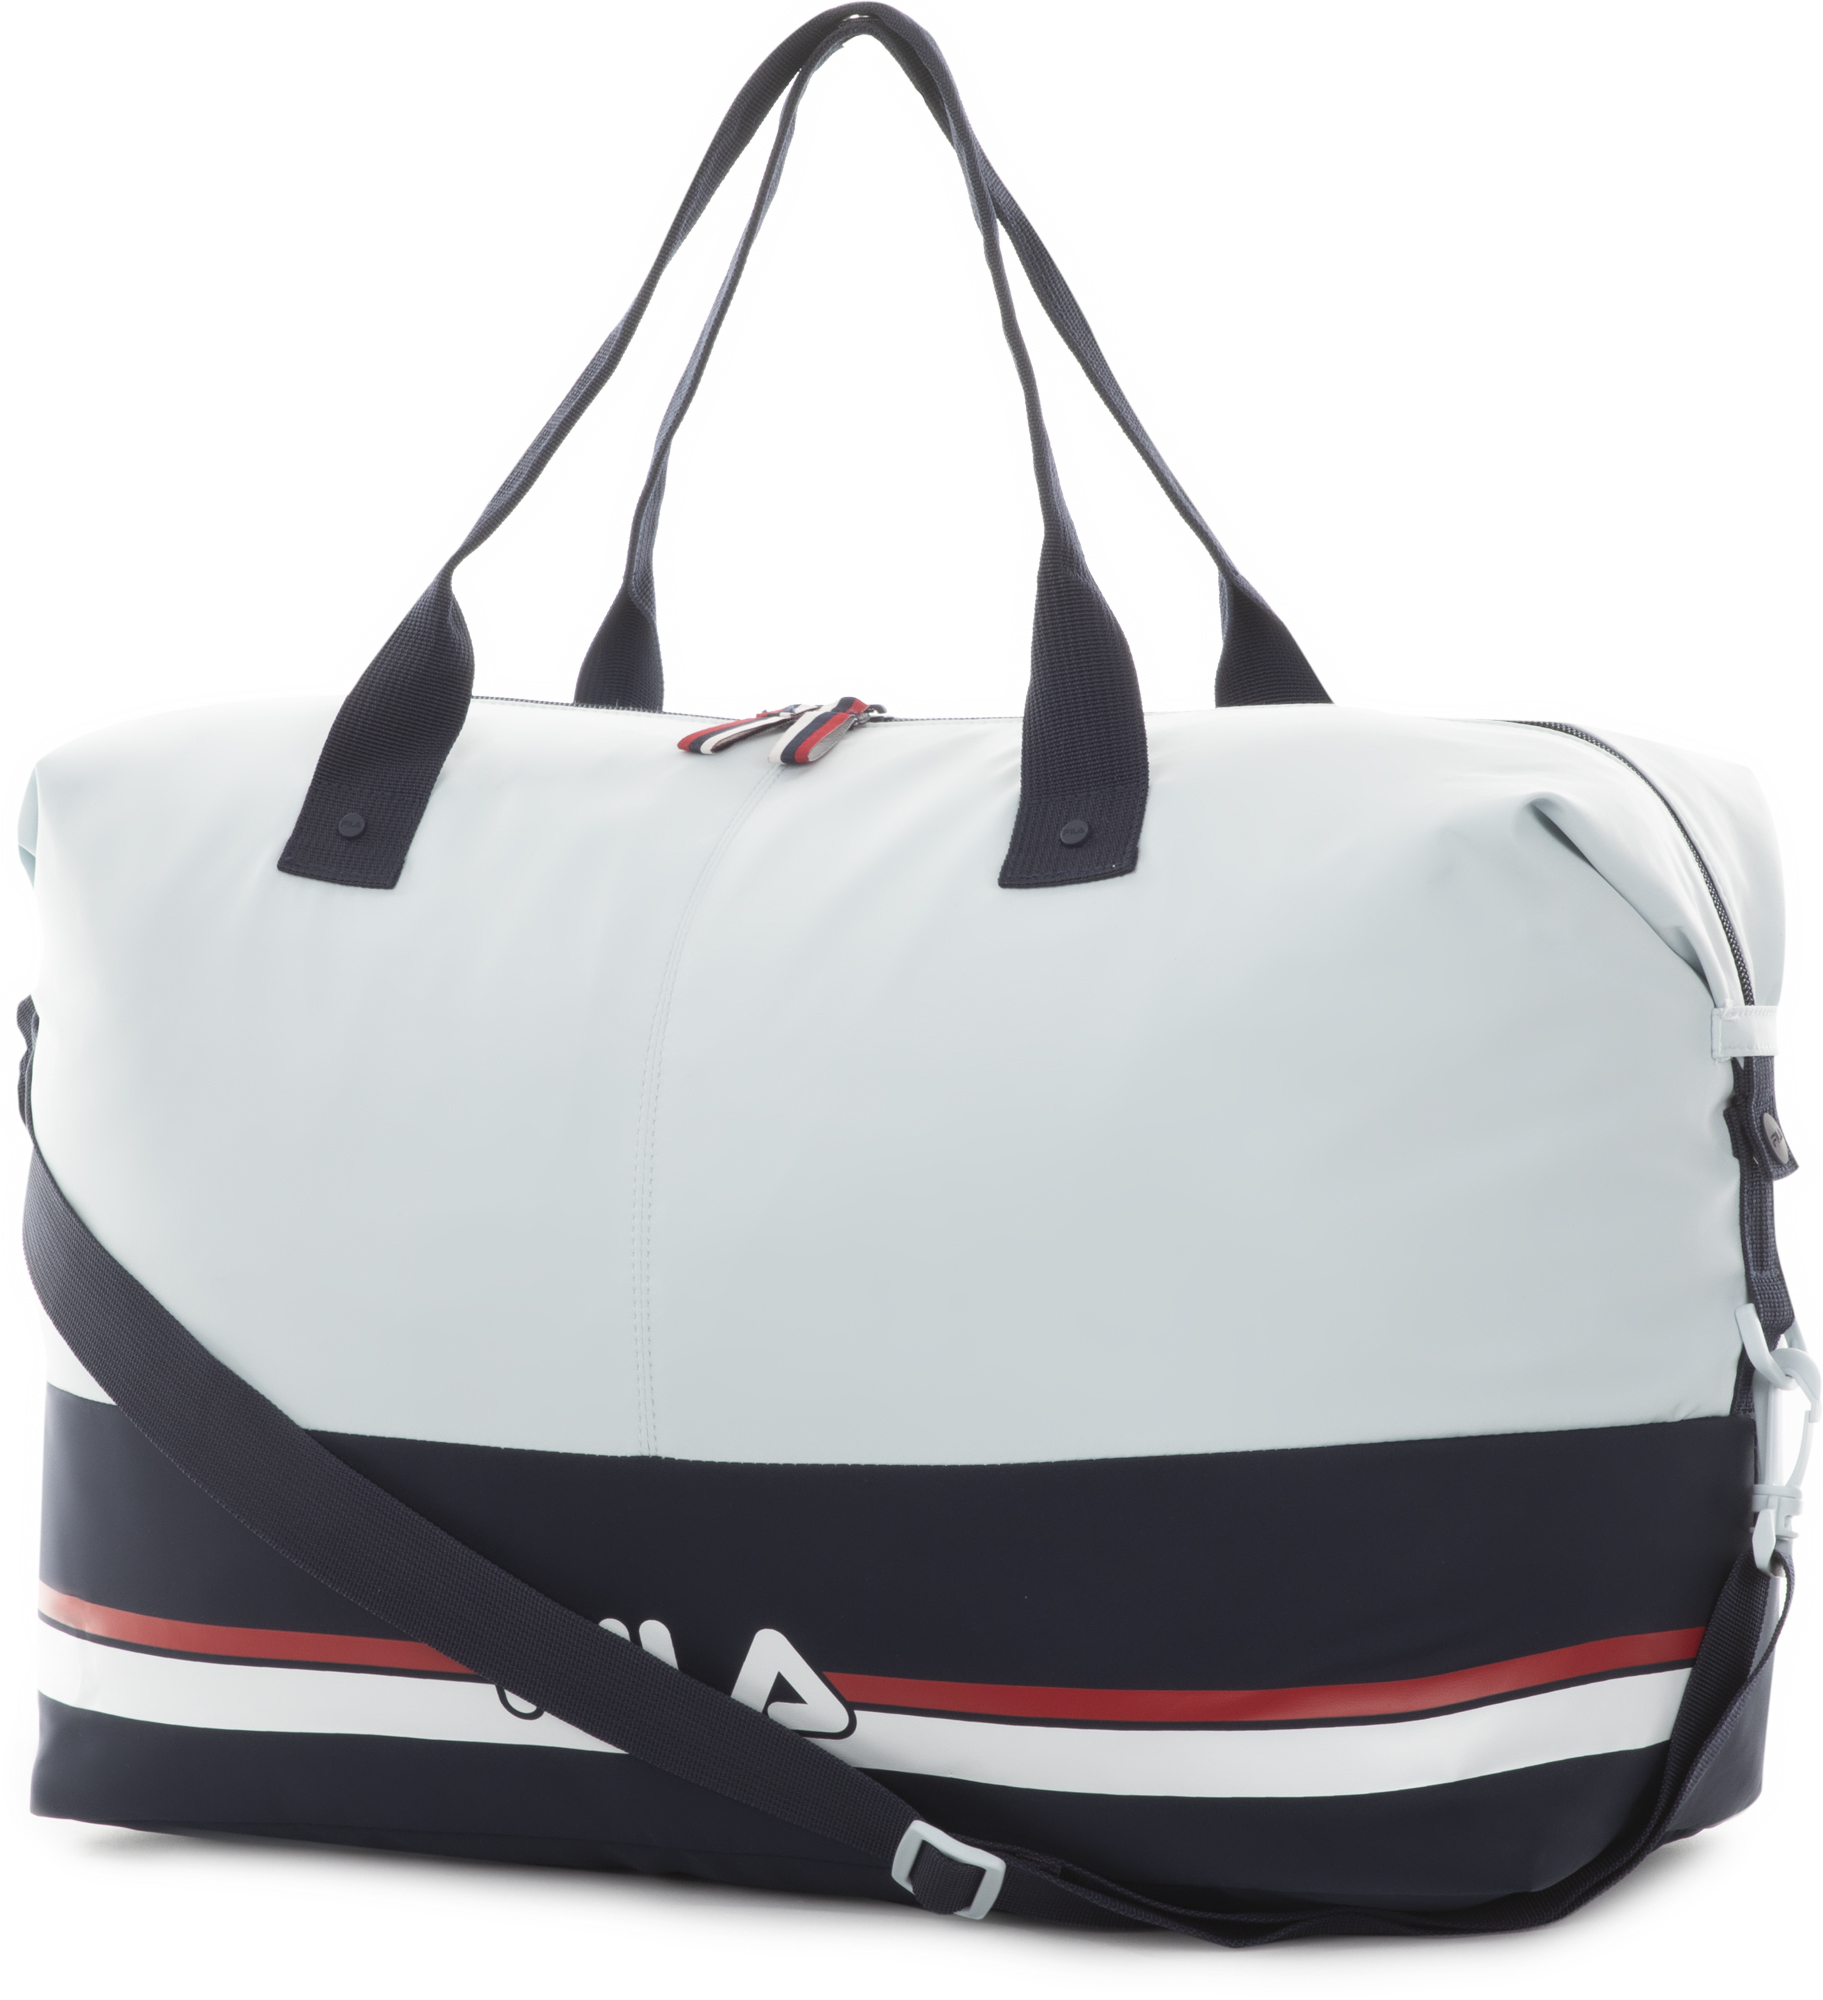 сумка спортивная fila coated bag s19aflacu01 m1 синий FILA Сумка женская FILA